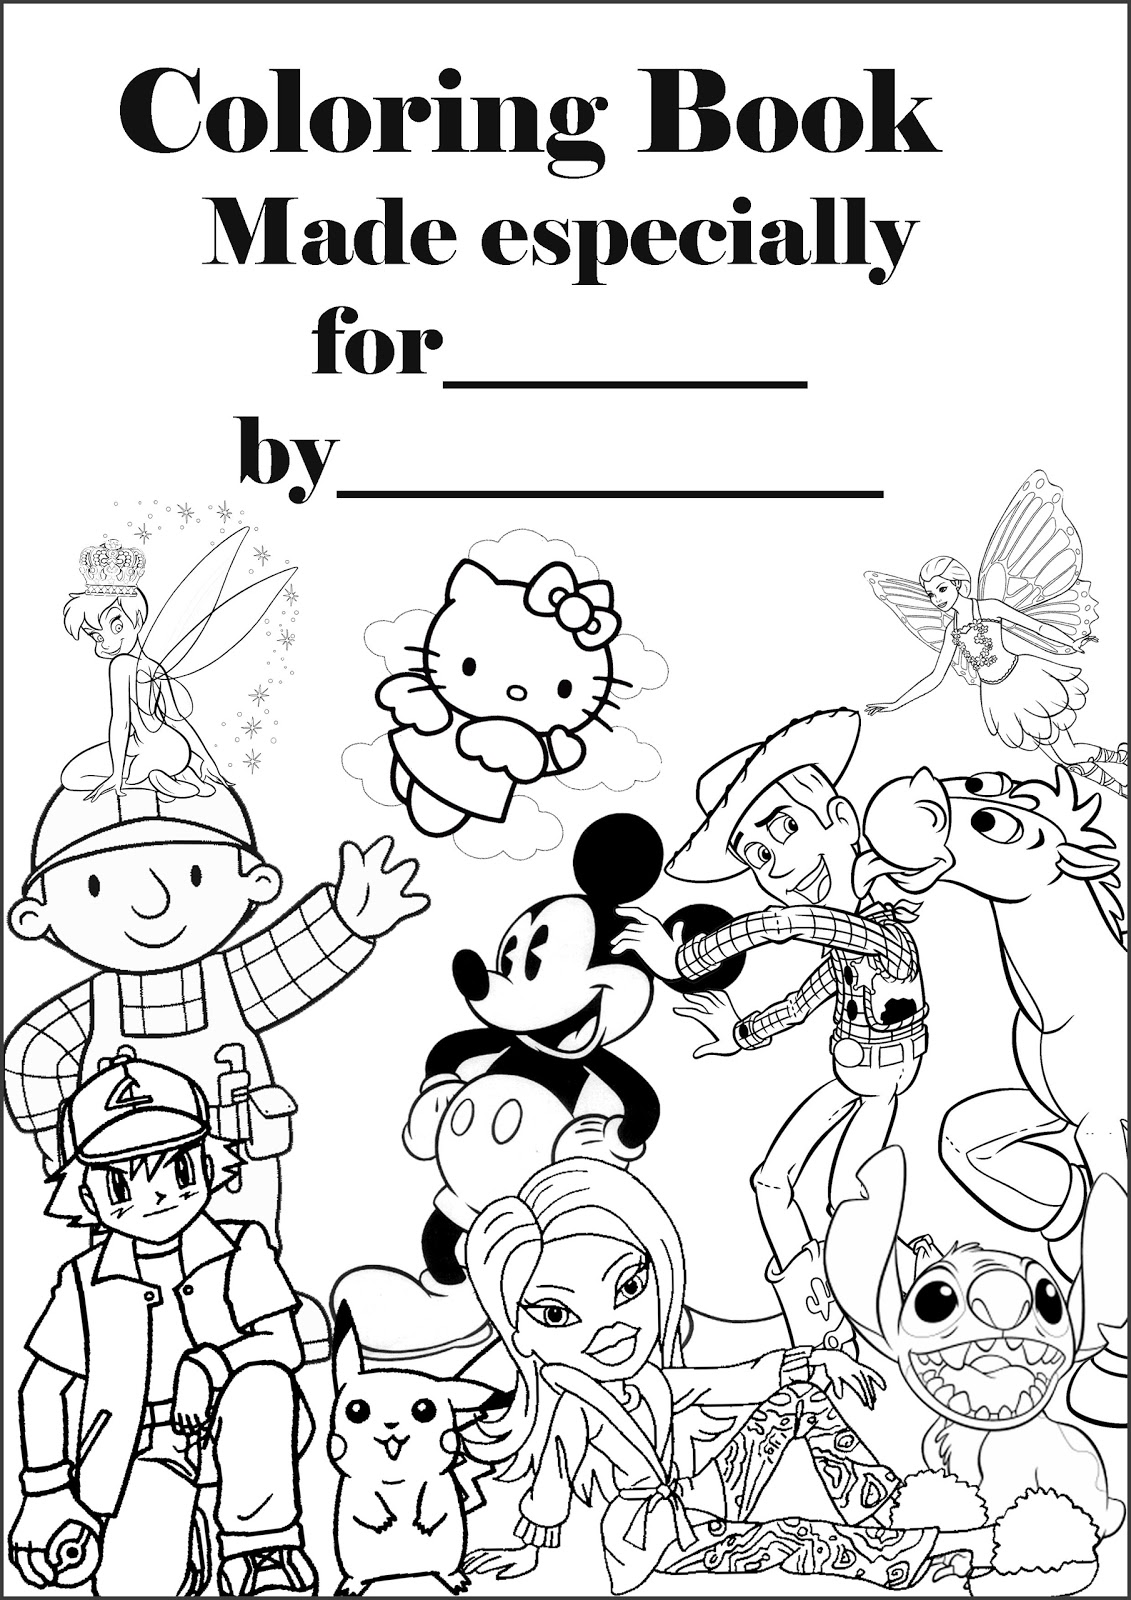 PERSONALISED COLORING BOOK COVER